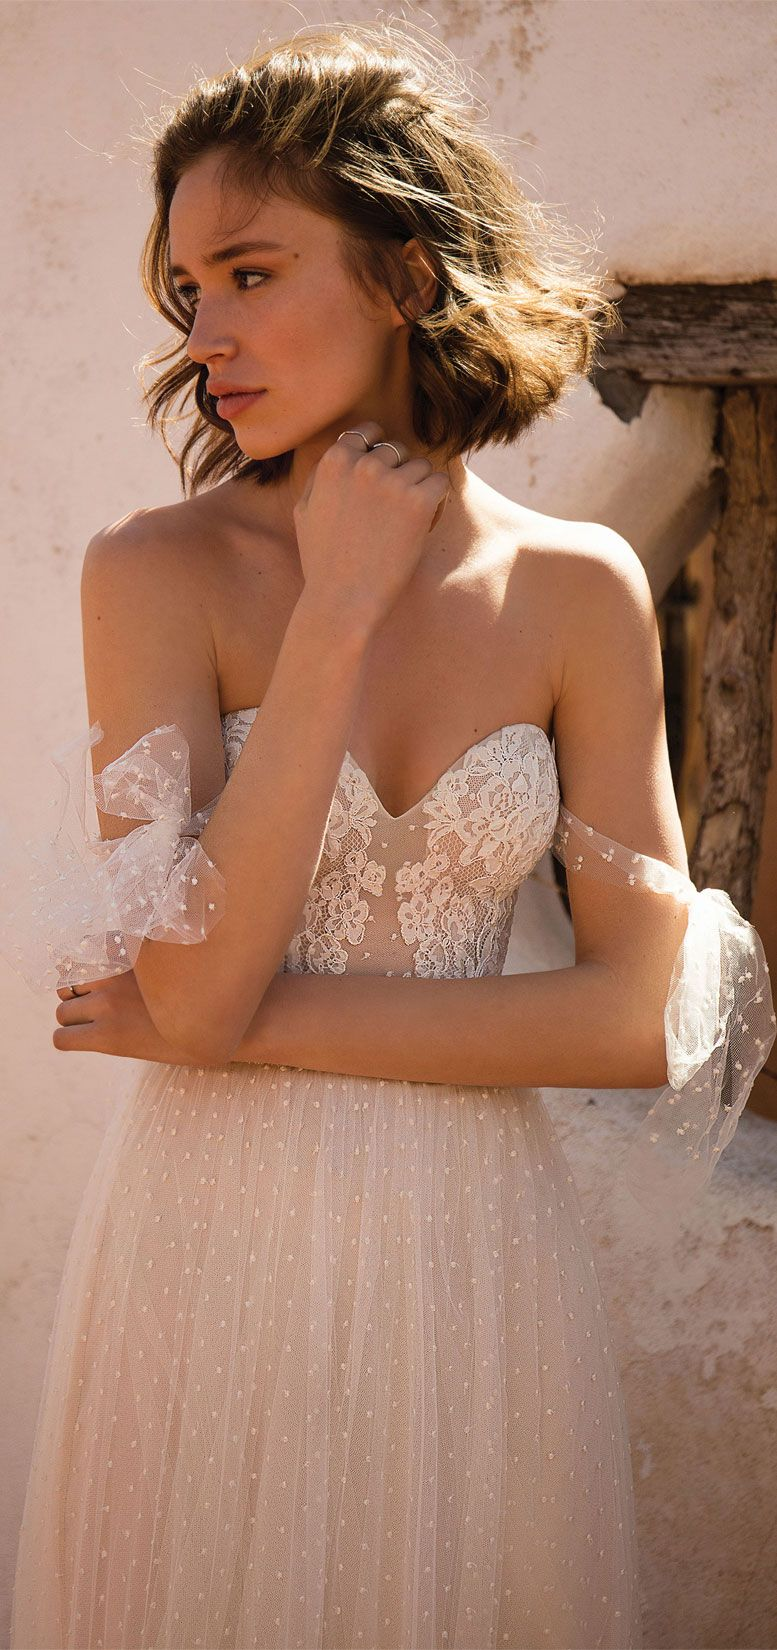 Flora Bride - Siren Of The Desert 2019 Bridal Collection, boho wedding dress, bohemian wedding gown ,a-line wedding dress,sweetheart neckline wedding gown with detachable bow sleeves  #wedding #weddingdress #weddinggown #bridedress